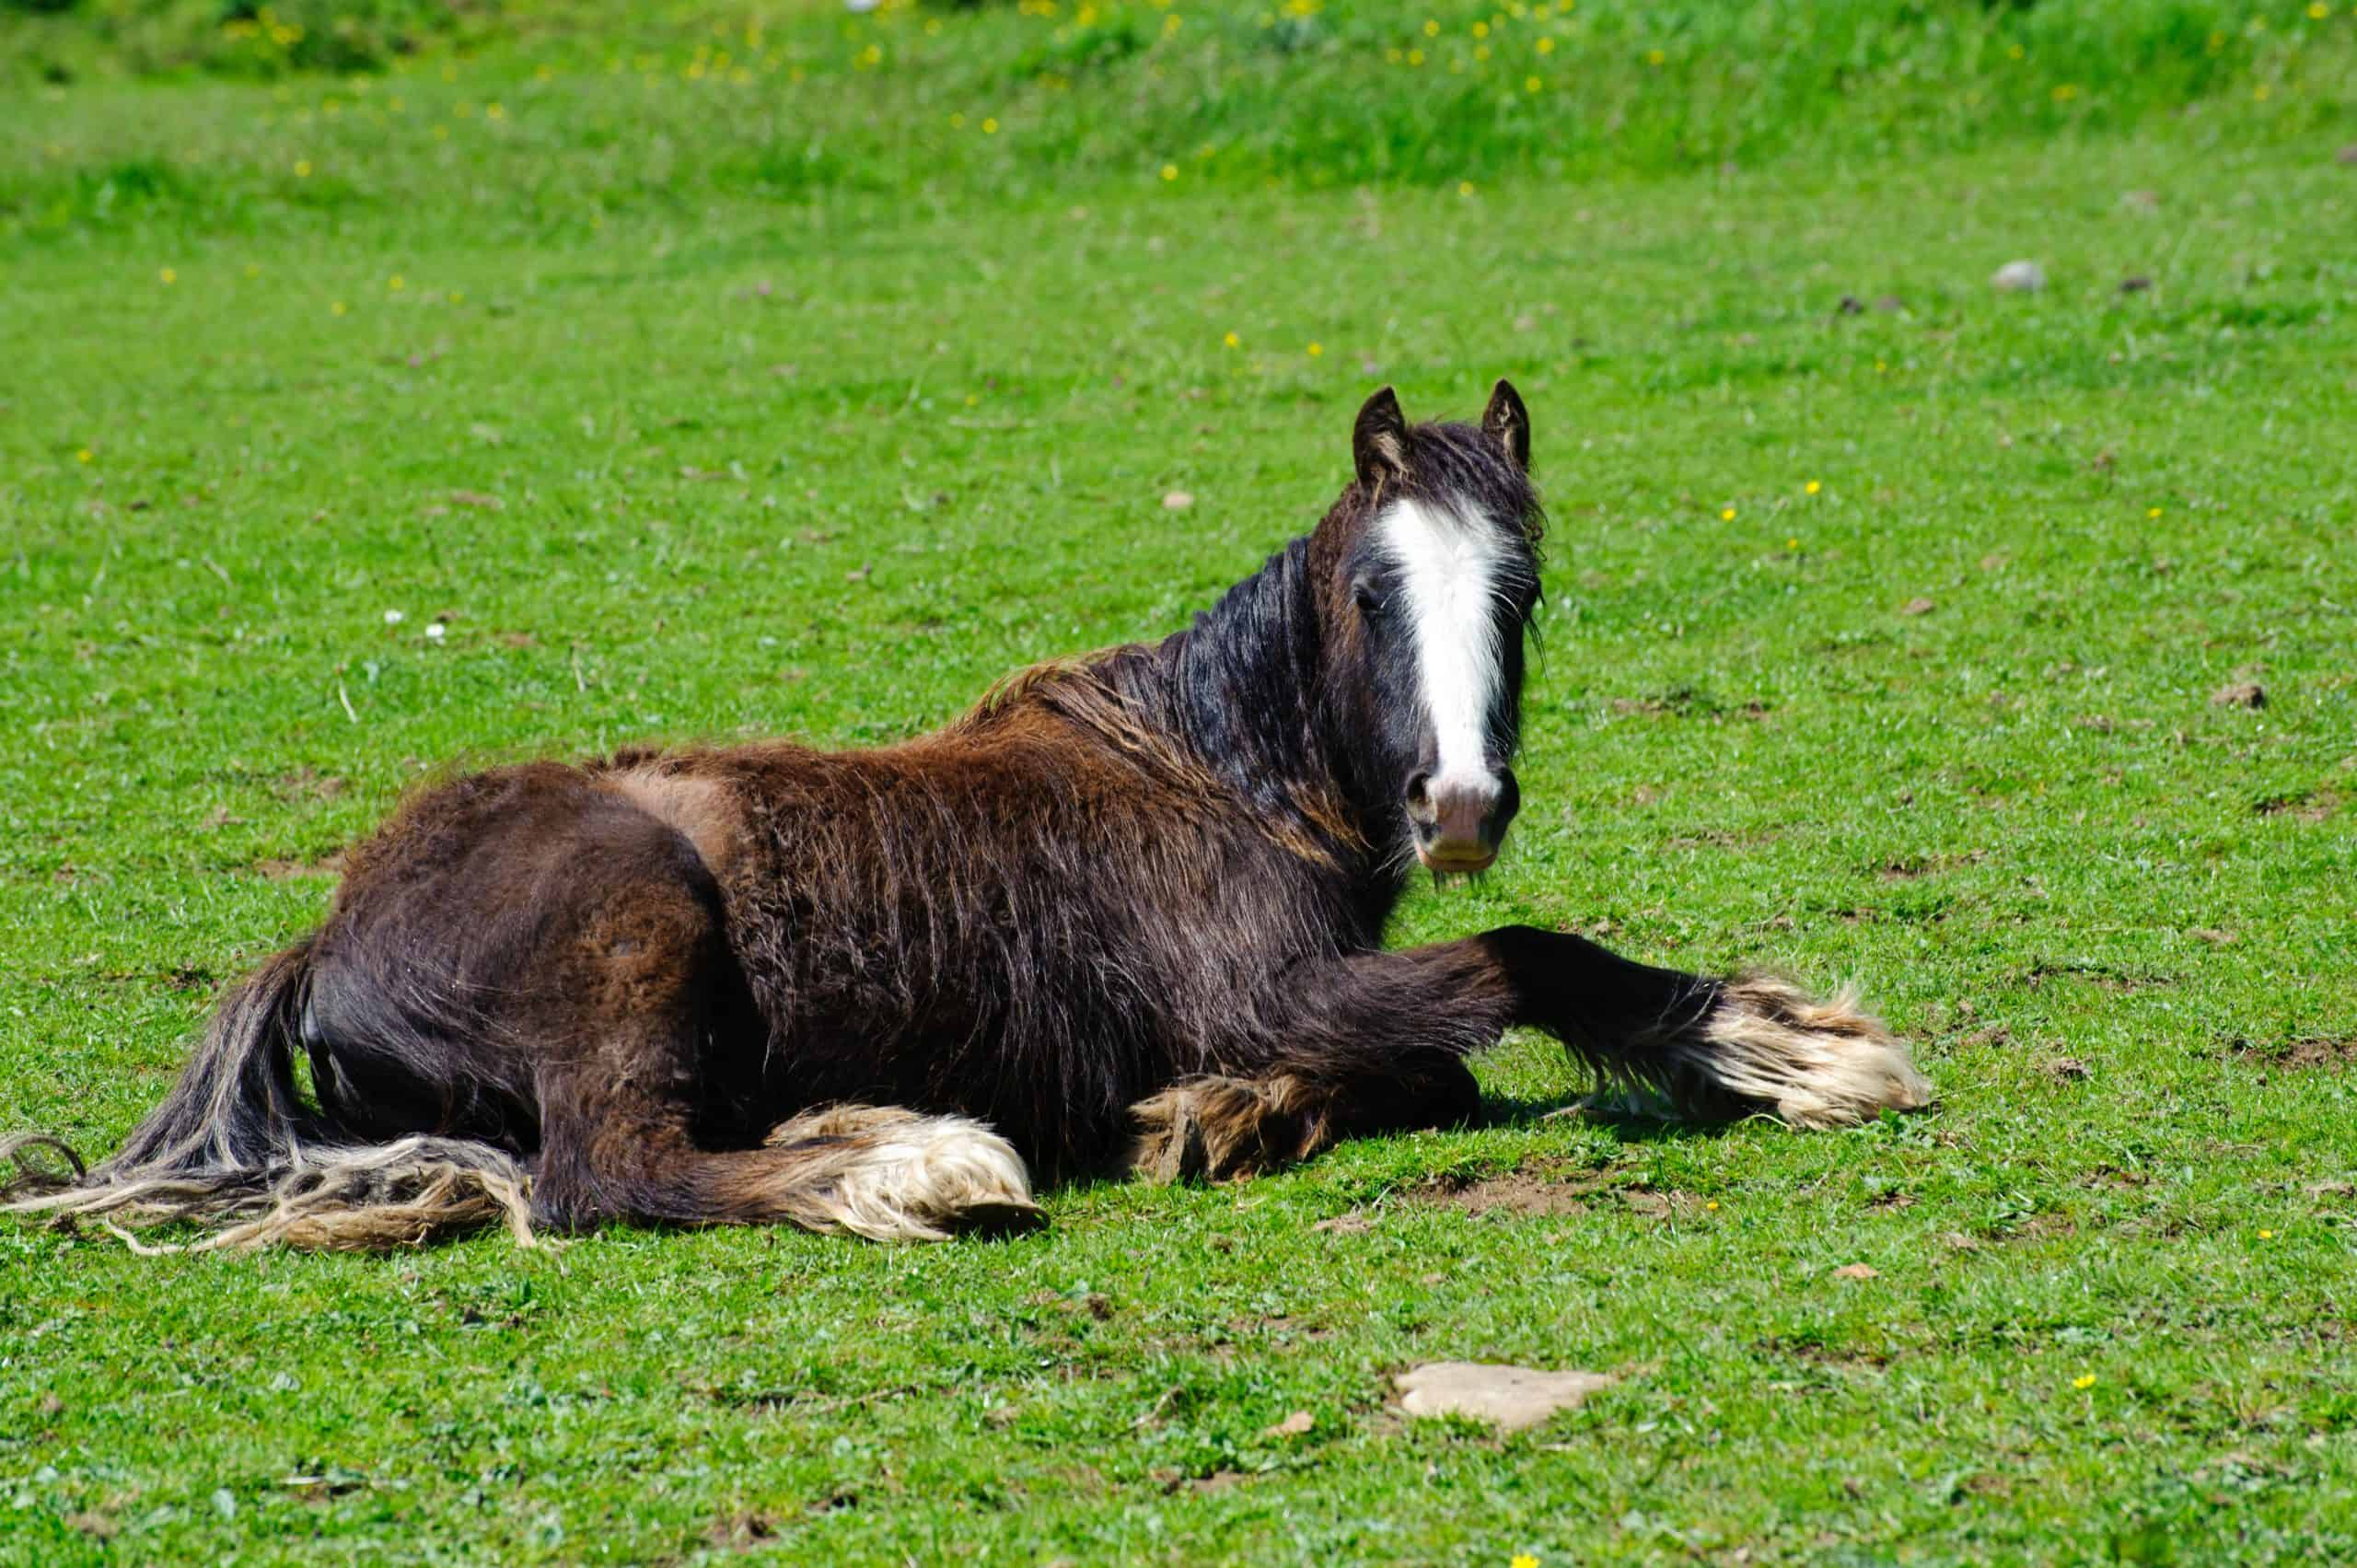 Rescued neglected horse resting and recovering in a green field